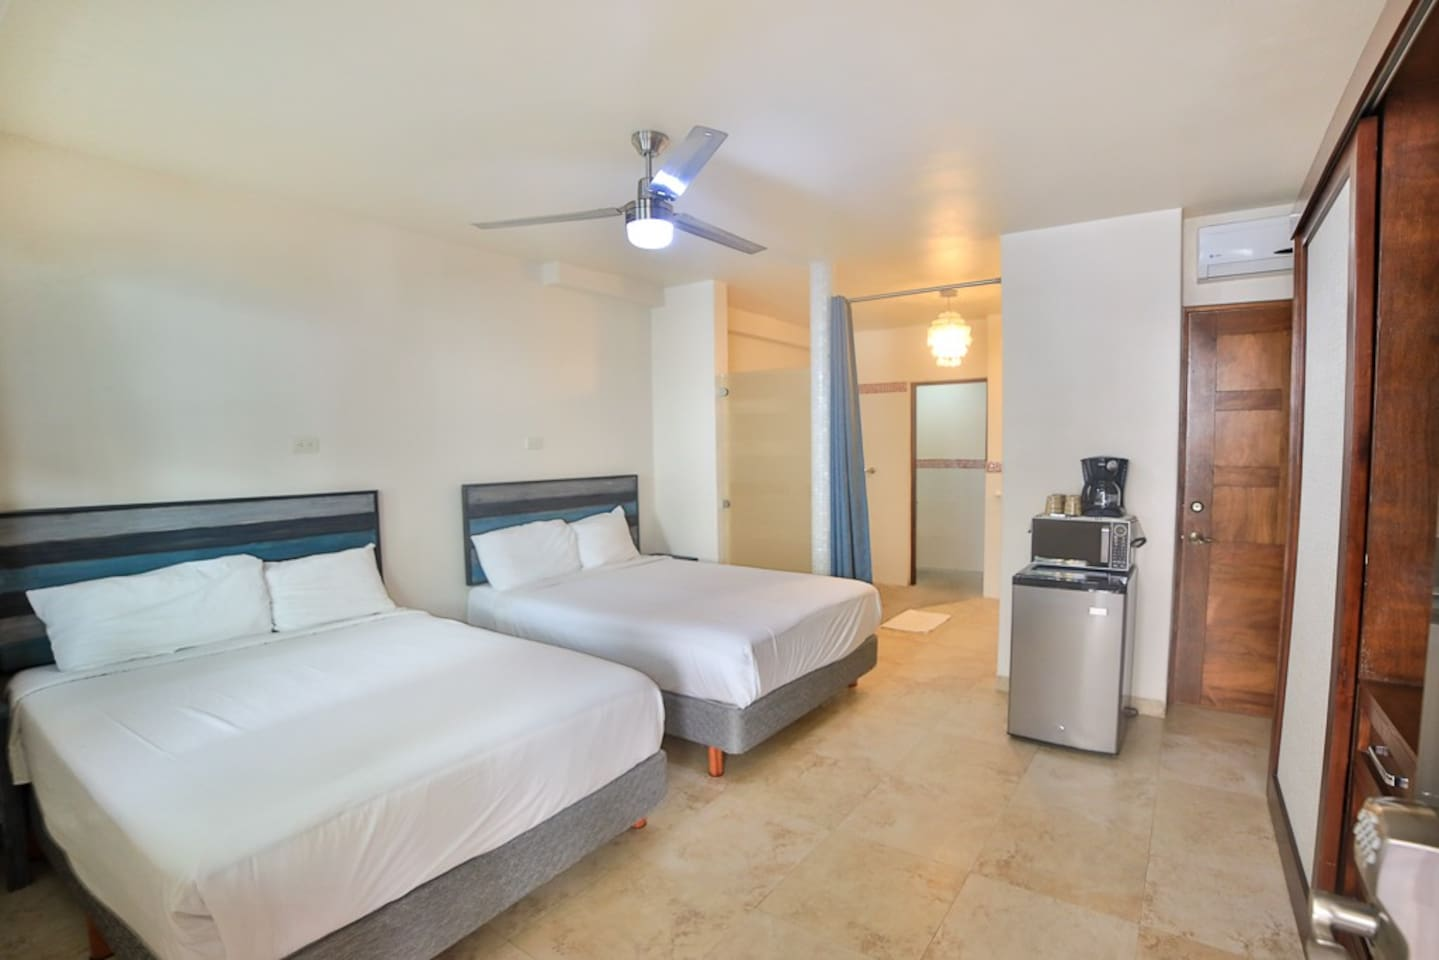 This is the room. It has two double beds, a fridge, microwave, coffee maker, cups, spoons, bottle/wine opener, tv as well as coffee, creamer, sugar and sweetener.